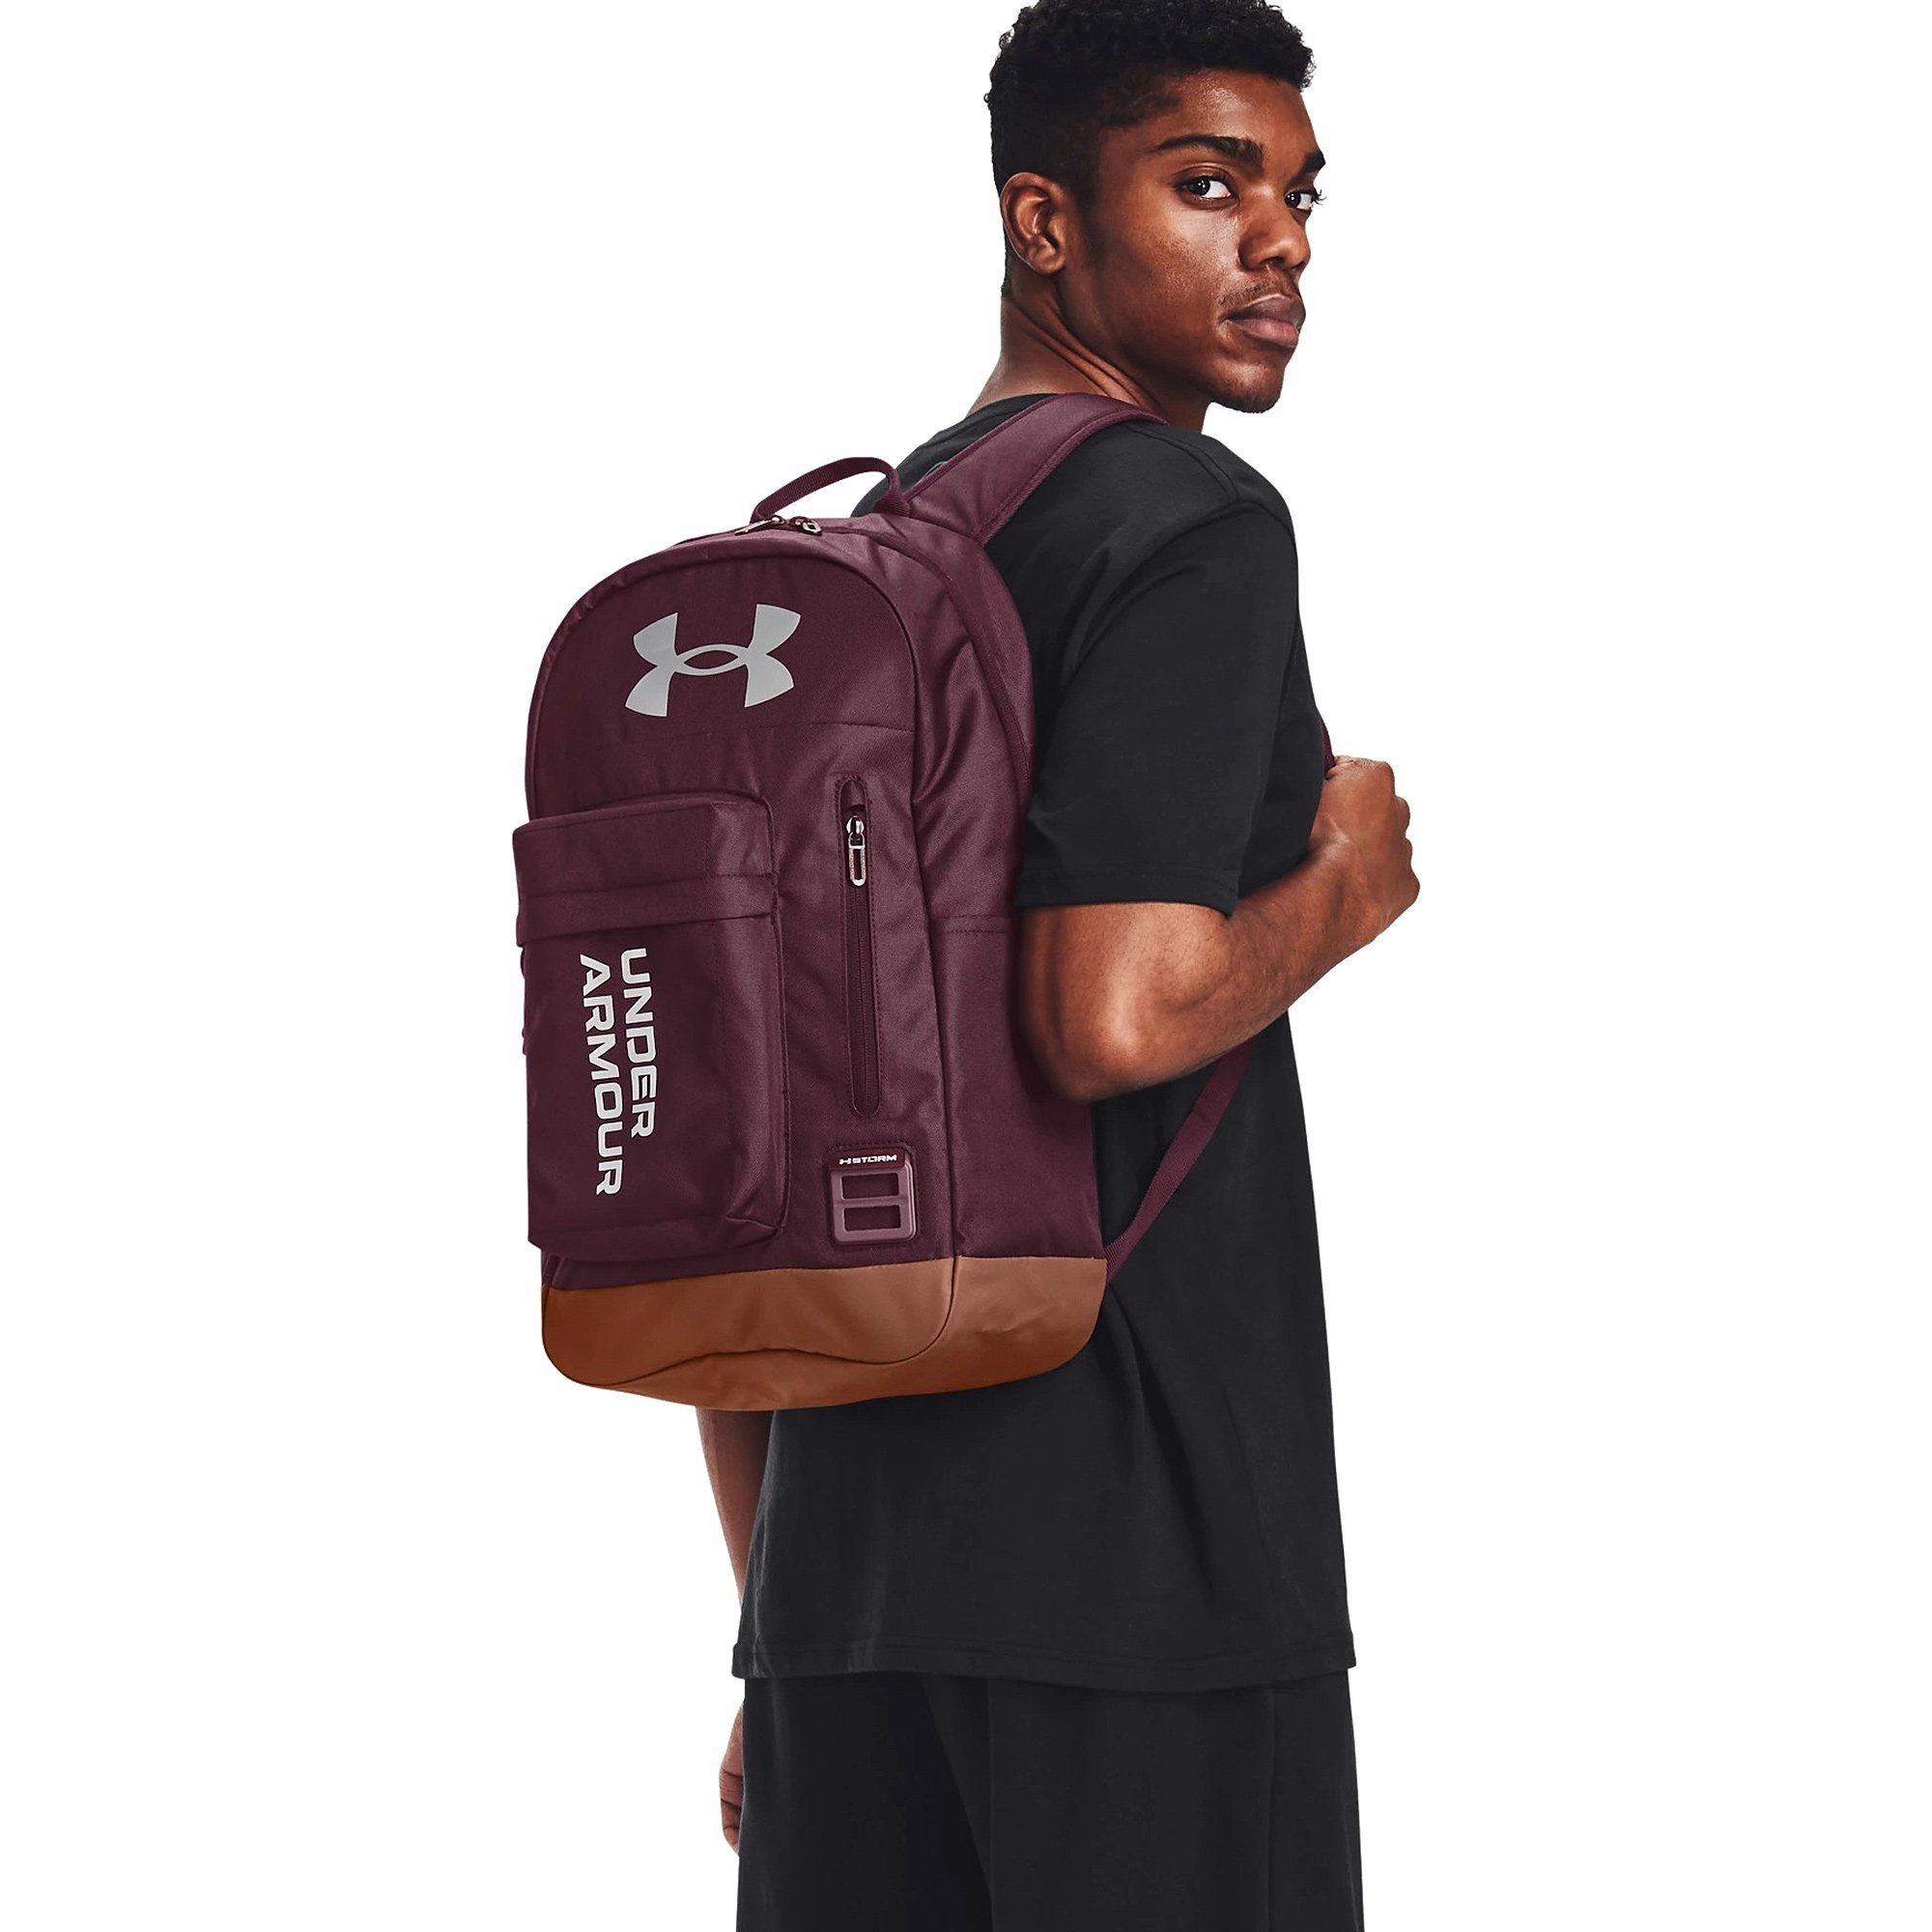 Under Armour - Ba lô Nam Nữ Bags Halftime Backpack Training SS21-1362